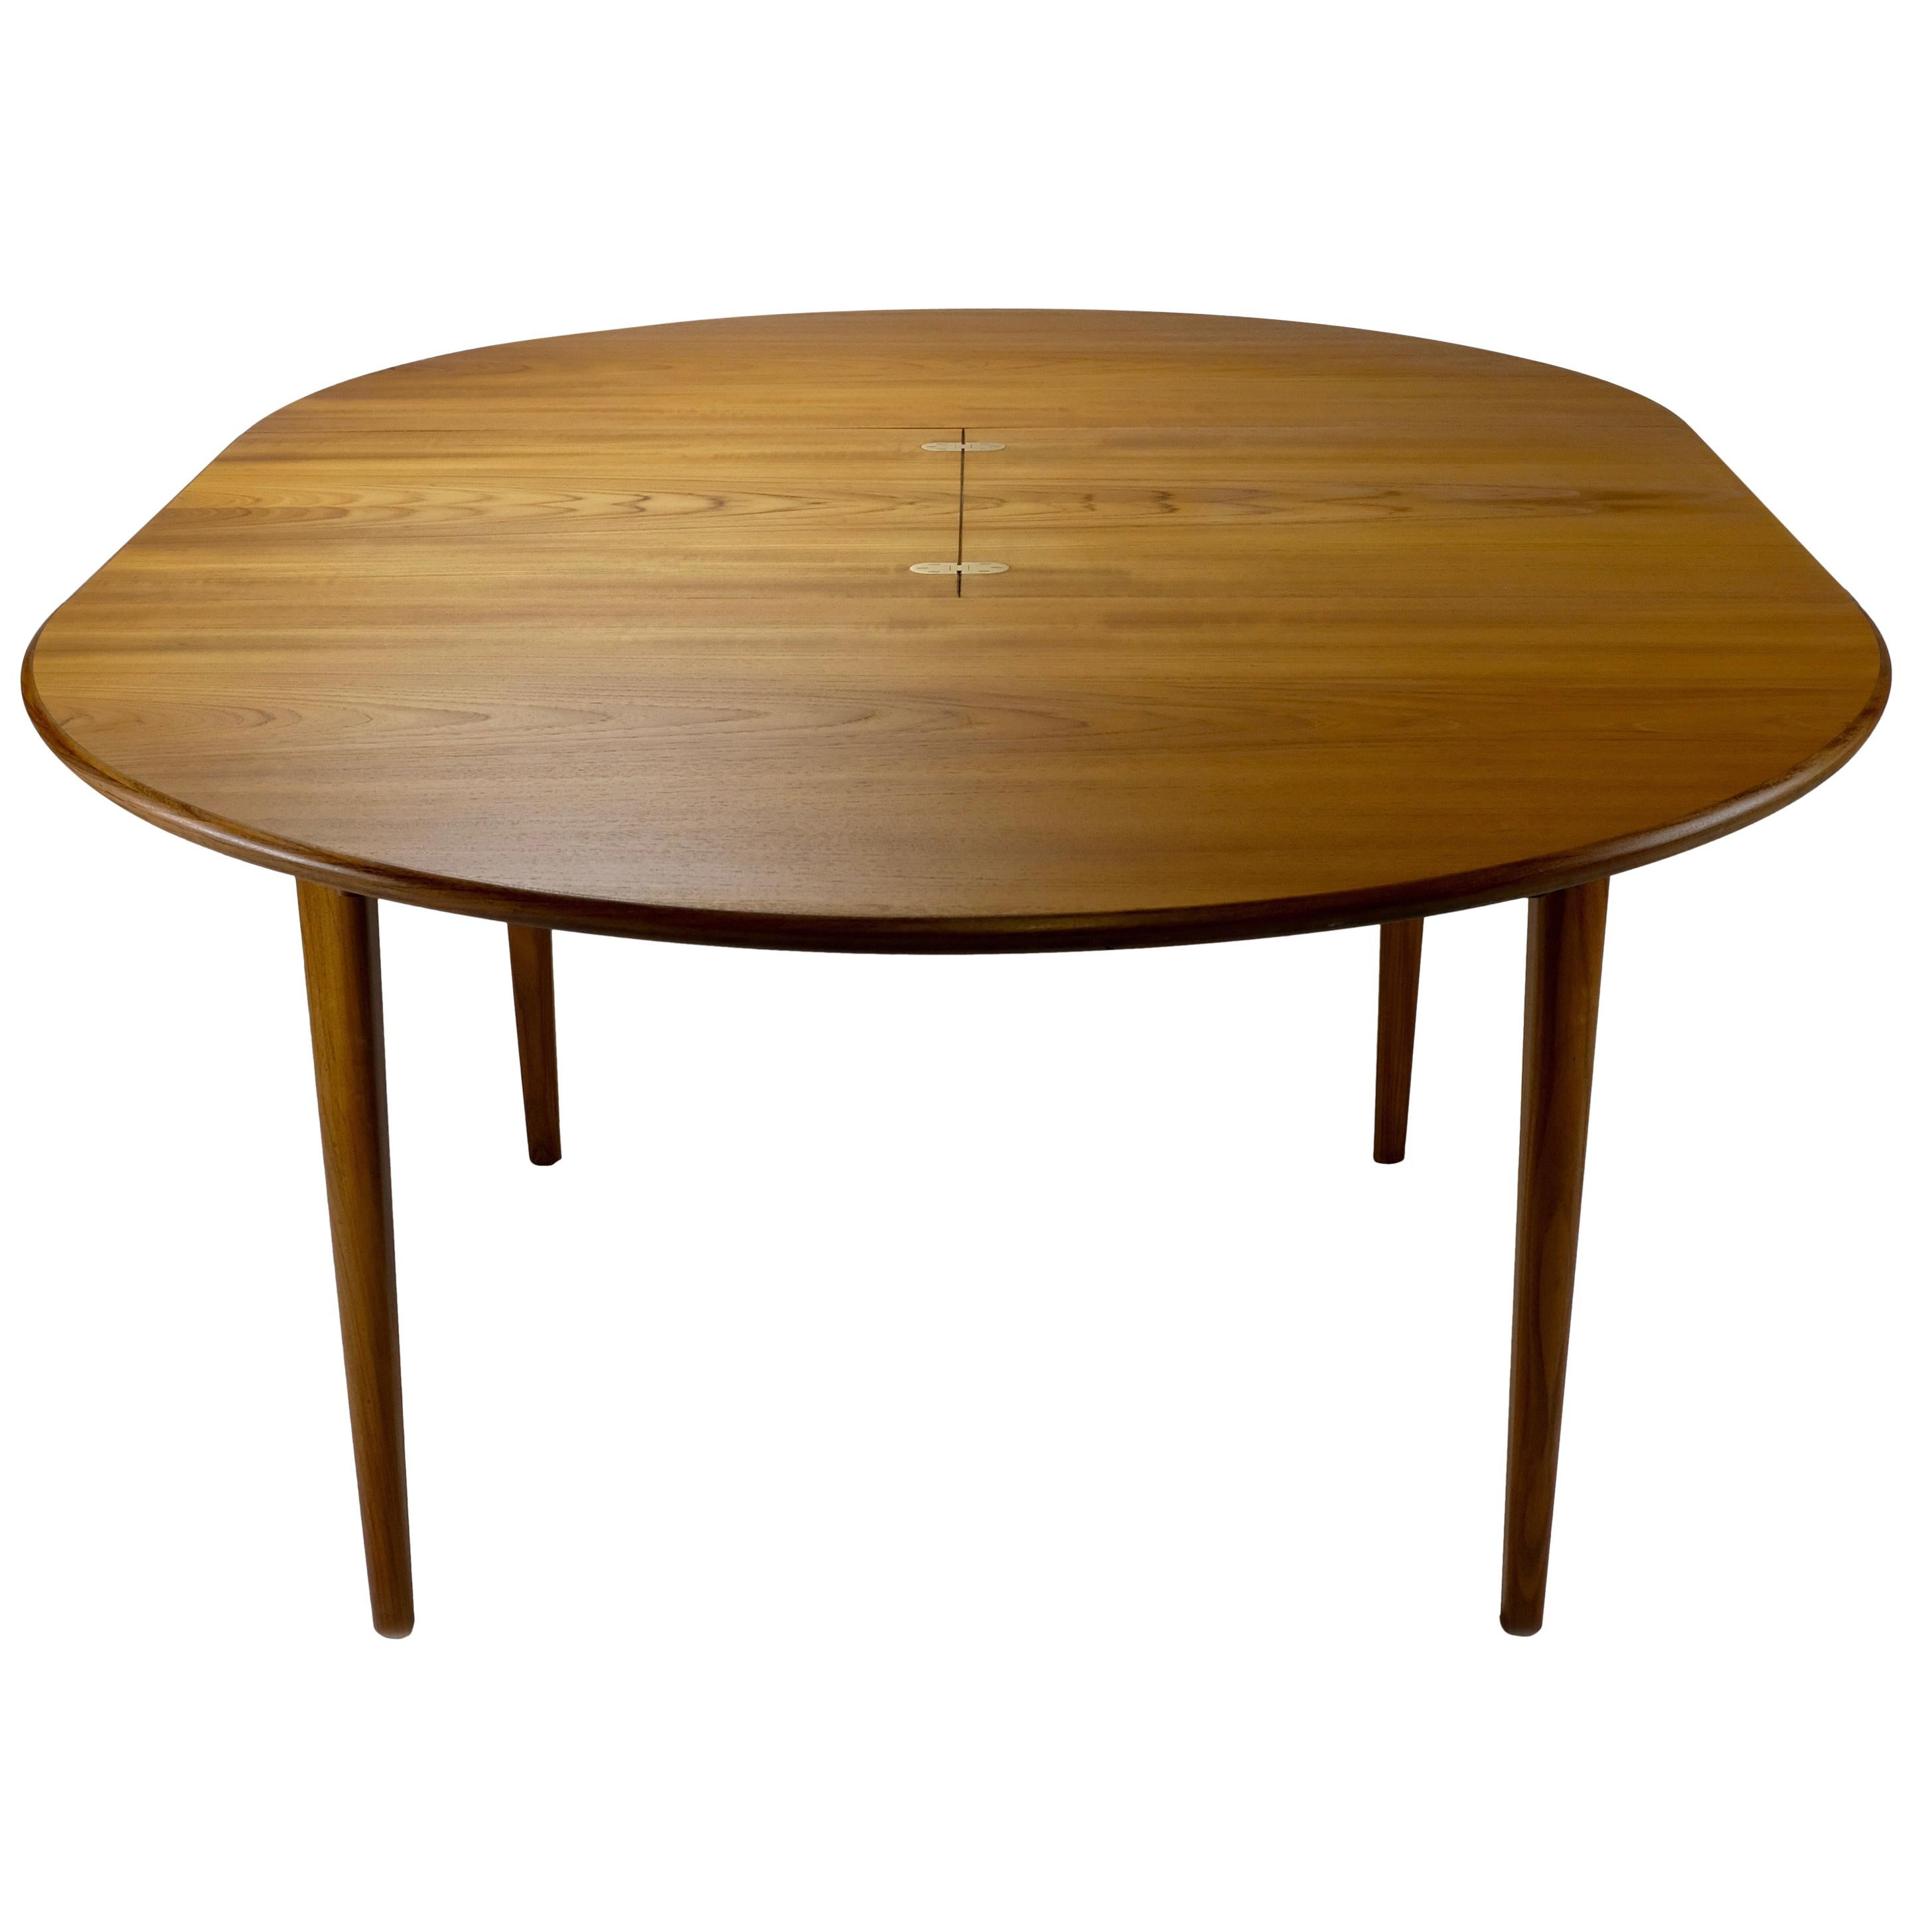 Danish Modern Teak Round Dining Table With Butterfly Leaf For Sale At 1stdibs